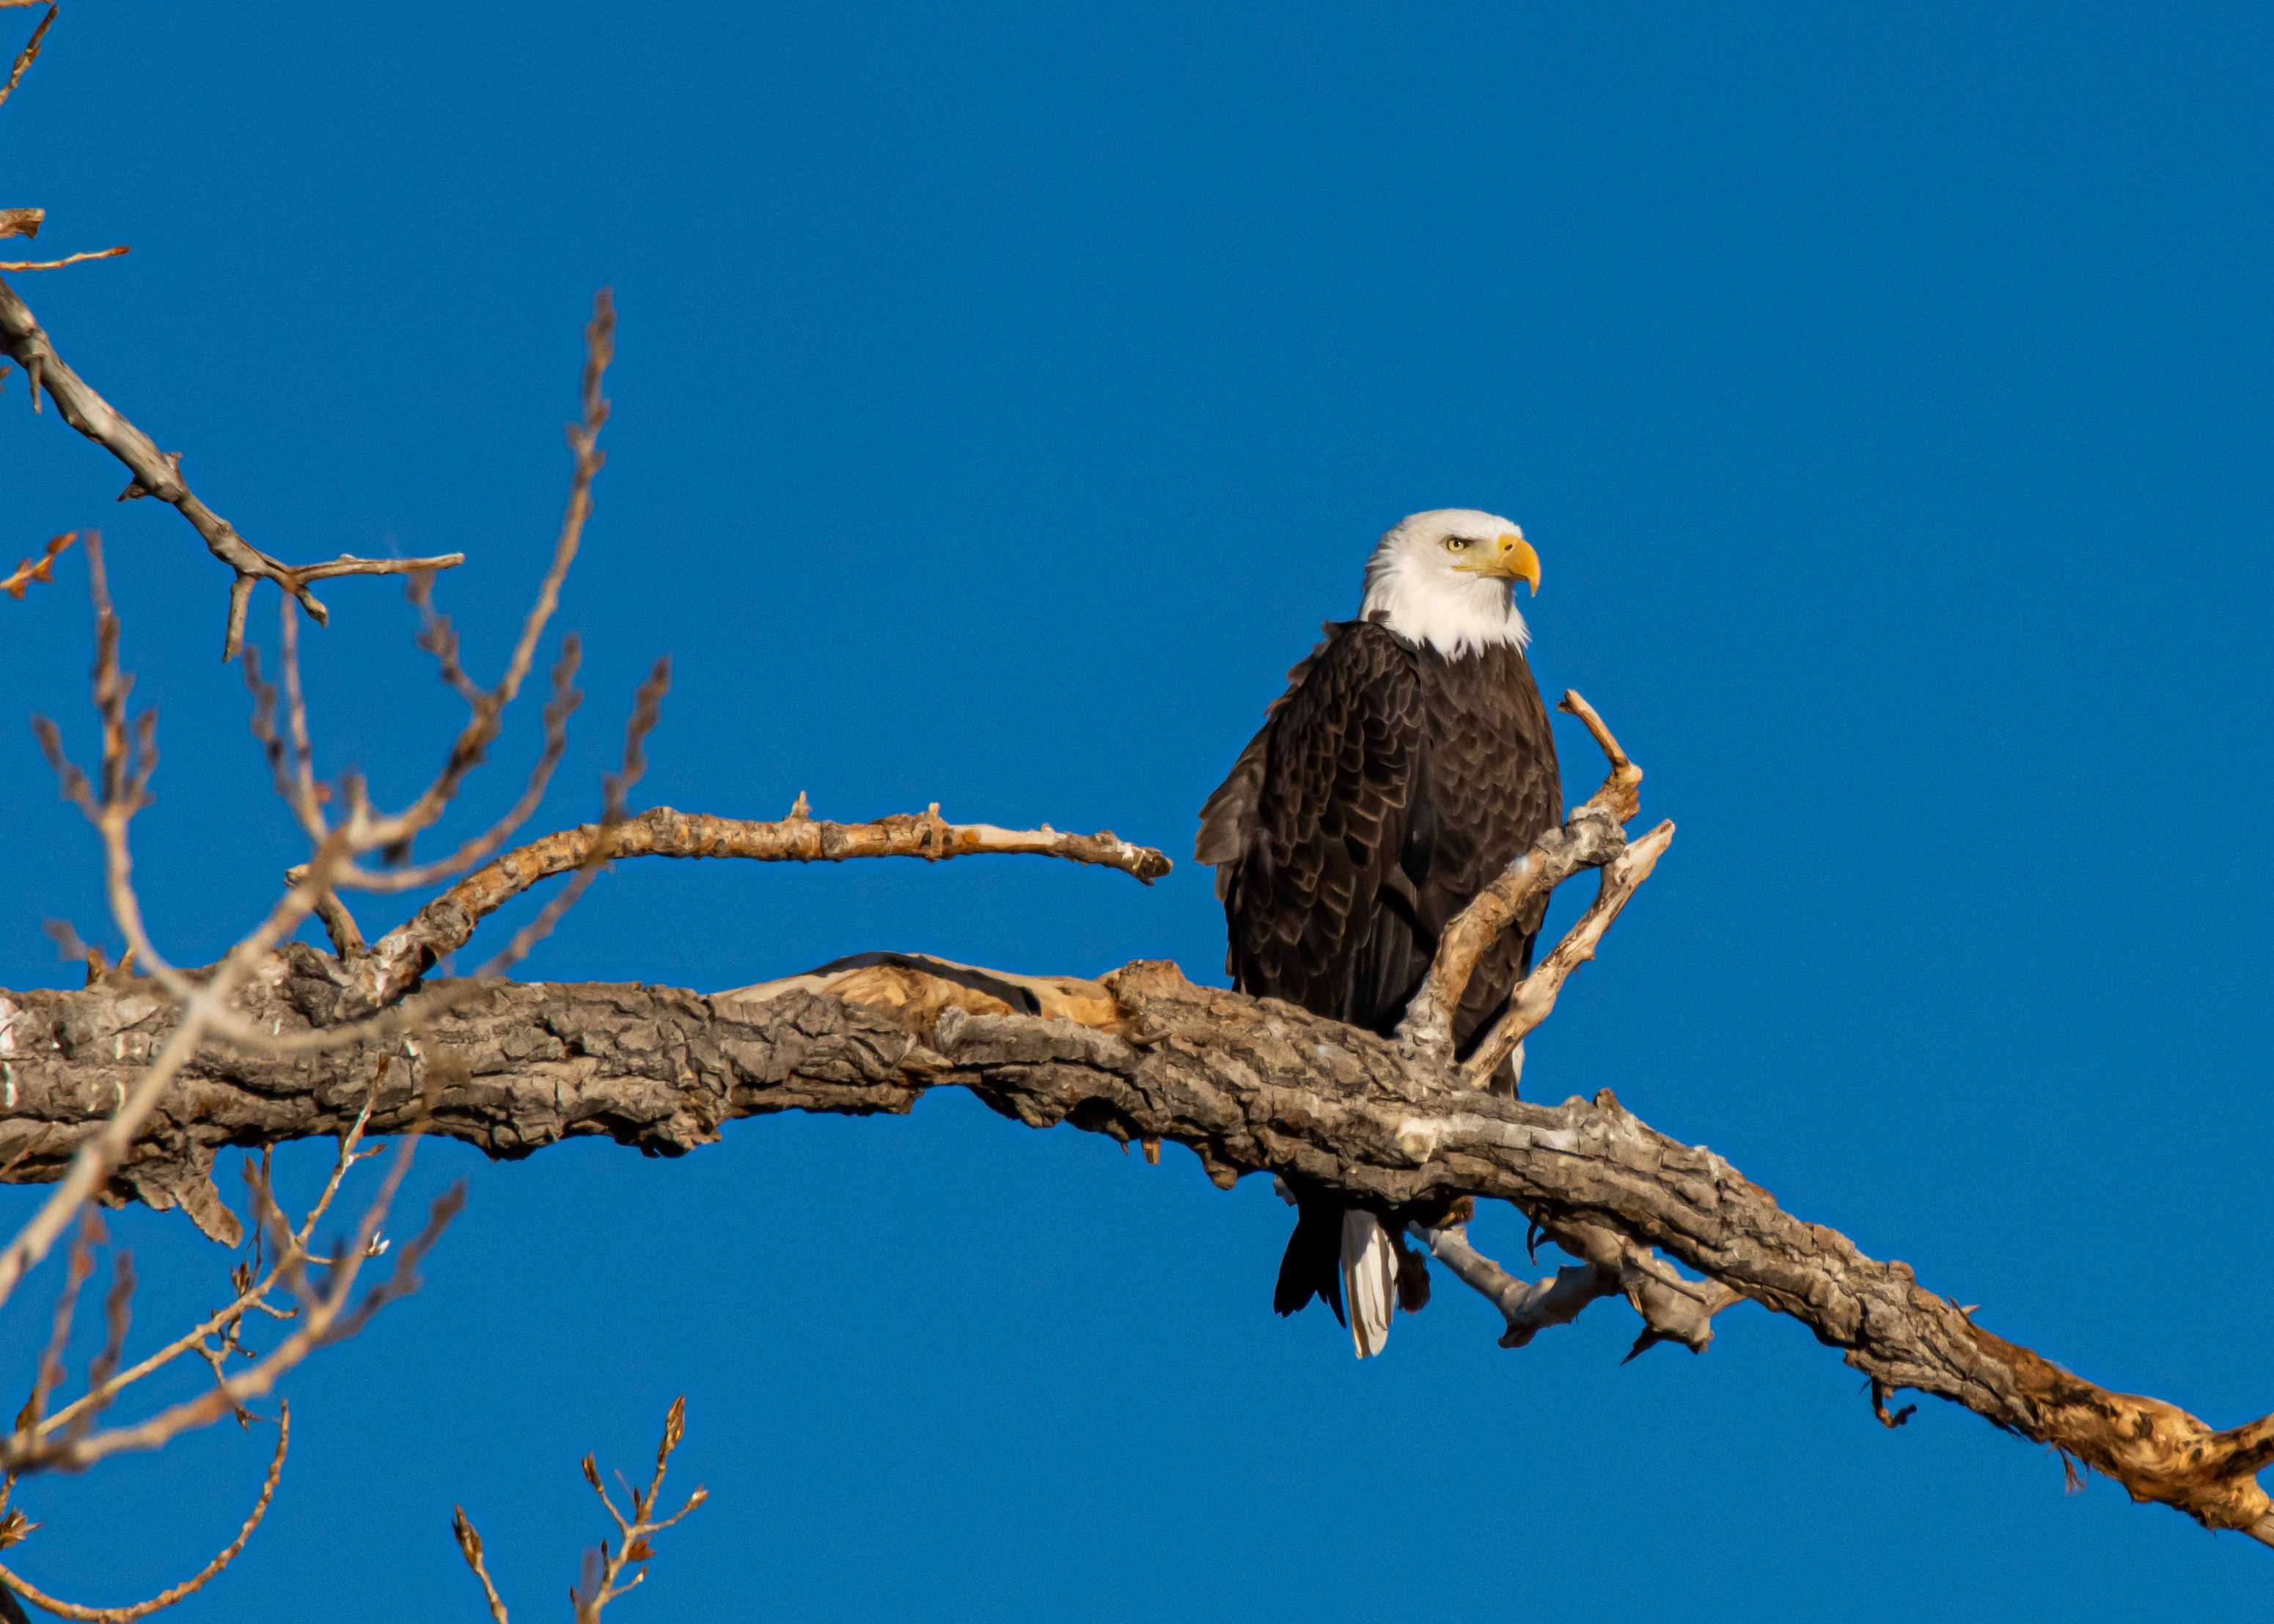 117353 download wallpaper Animals, Bald Eagle, White-Headed Eagle, Bird, Branch, Predator, Wildlife screensavers and pictures for free